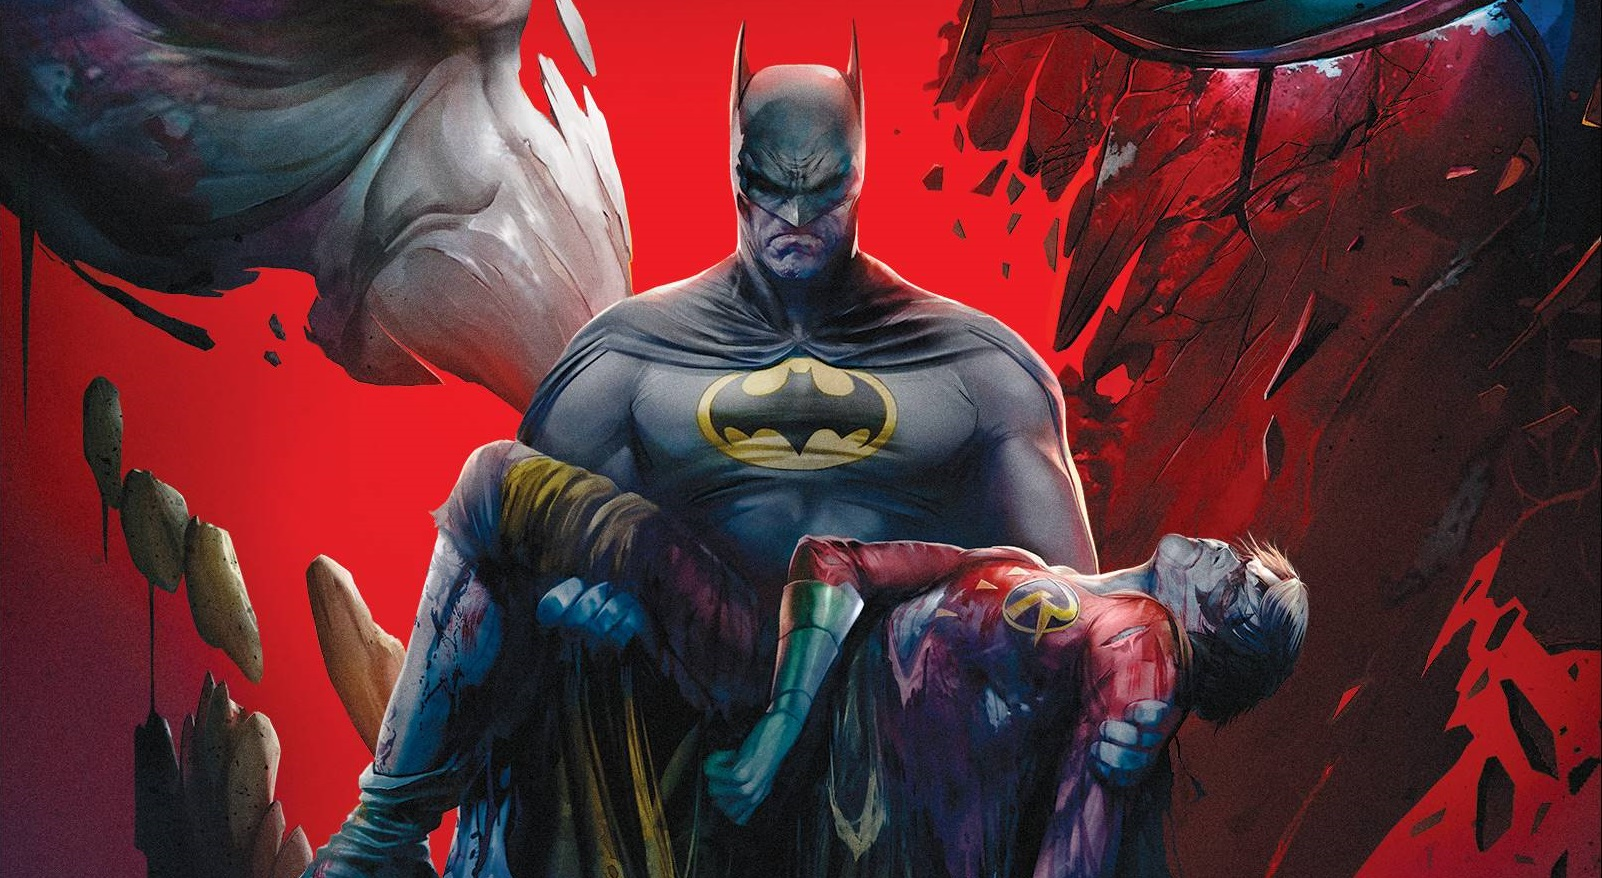 BATMAN: DEATH IN THE FAMILY Allows Let's You Choose Your Own Adventure